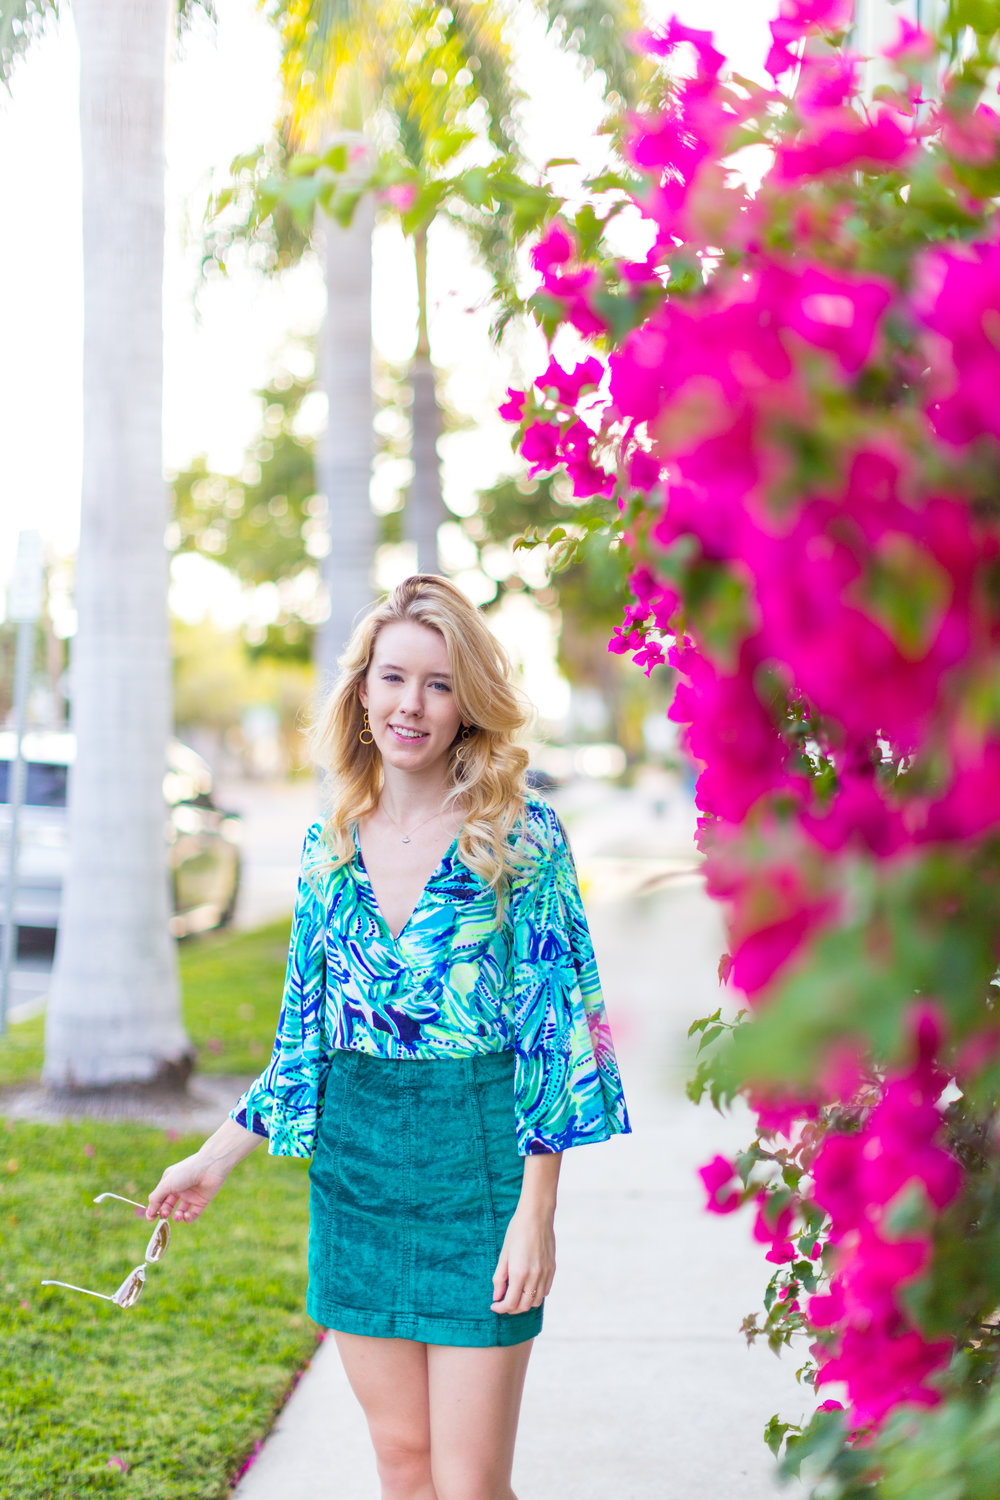 Preppy Fall Fashion Lilly Pulitzer Florida Green Skirt.jpg